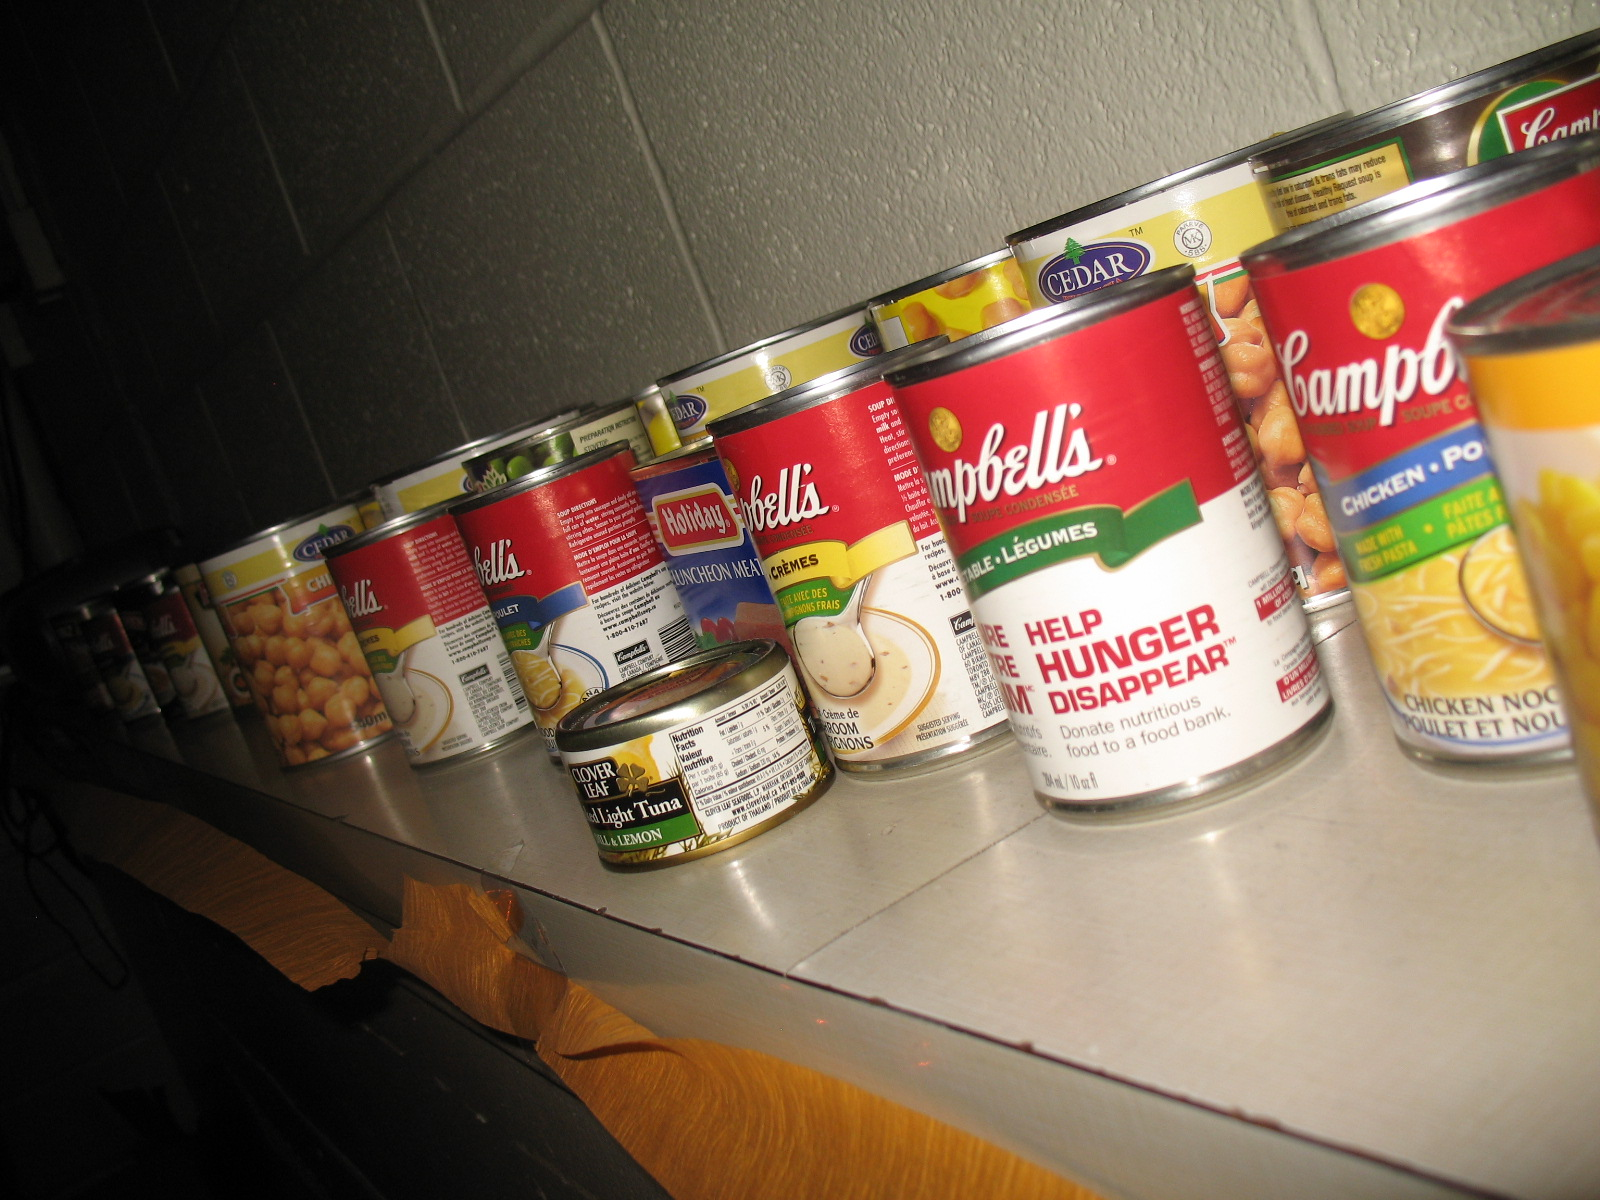 Food drive cans